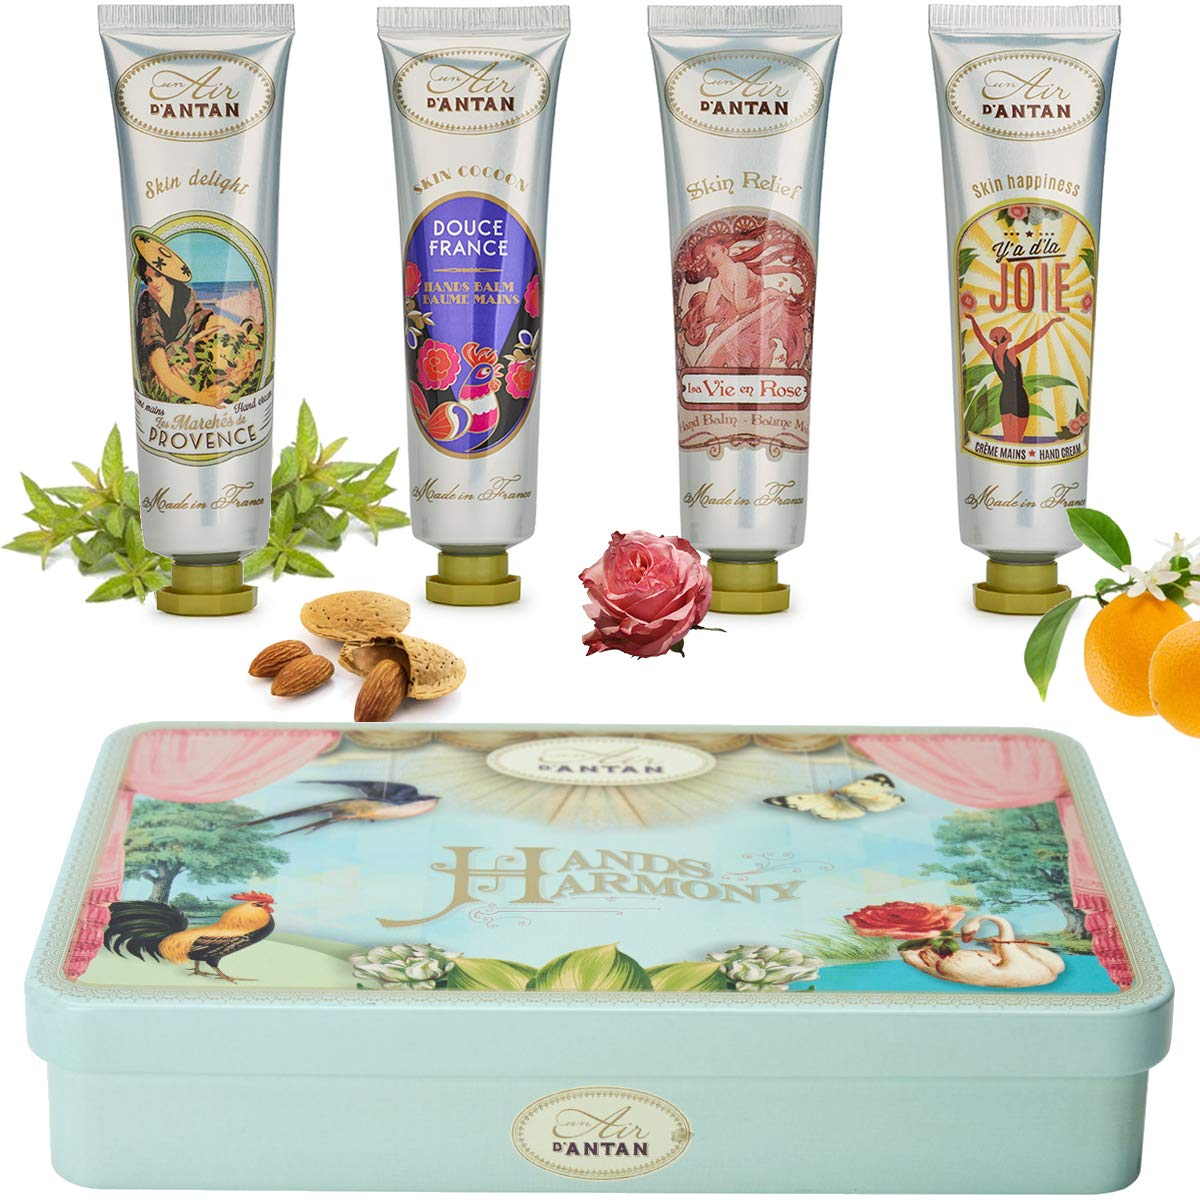 Un Air d'Antan Beauty Set. Moisturizing Hand Creams with Shea Butter, Aloe Vera or Sweet Almond in a Vintage Tin Box. Fragrance: Rose, Almond, Verbena, Orange Blossom. 4x0.8oz. Christmas Gift Idea